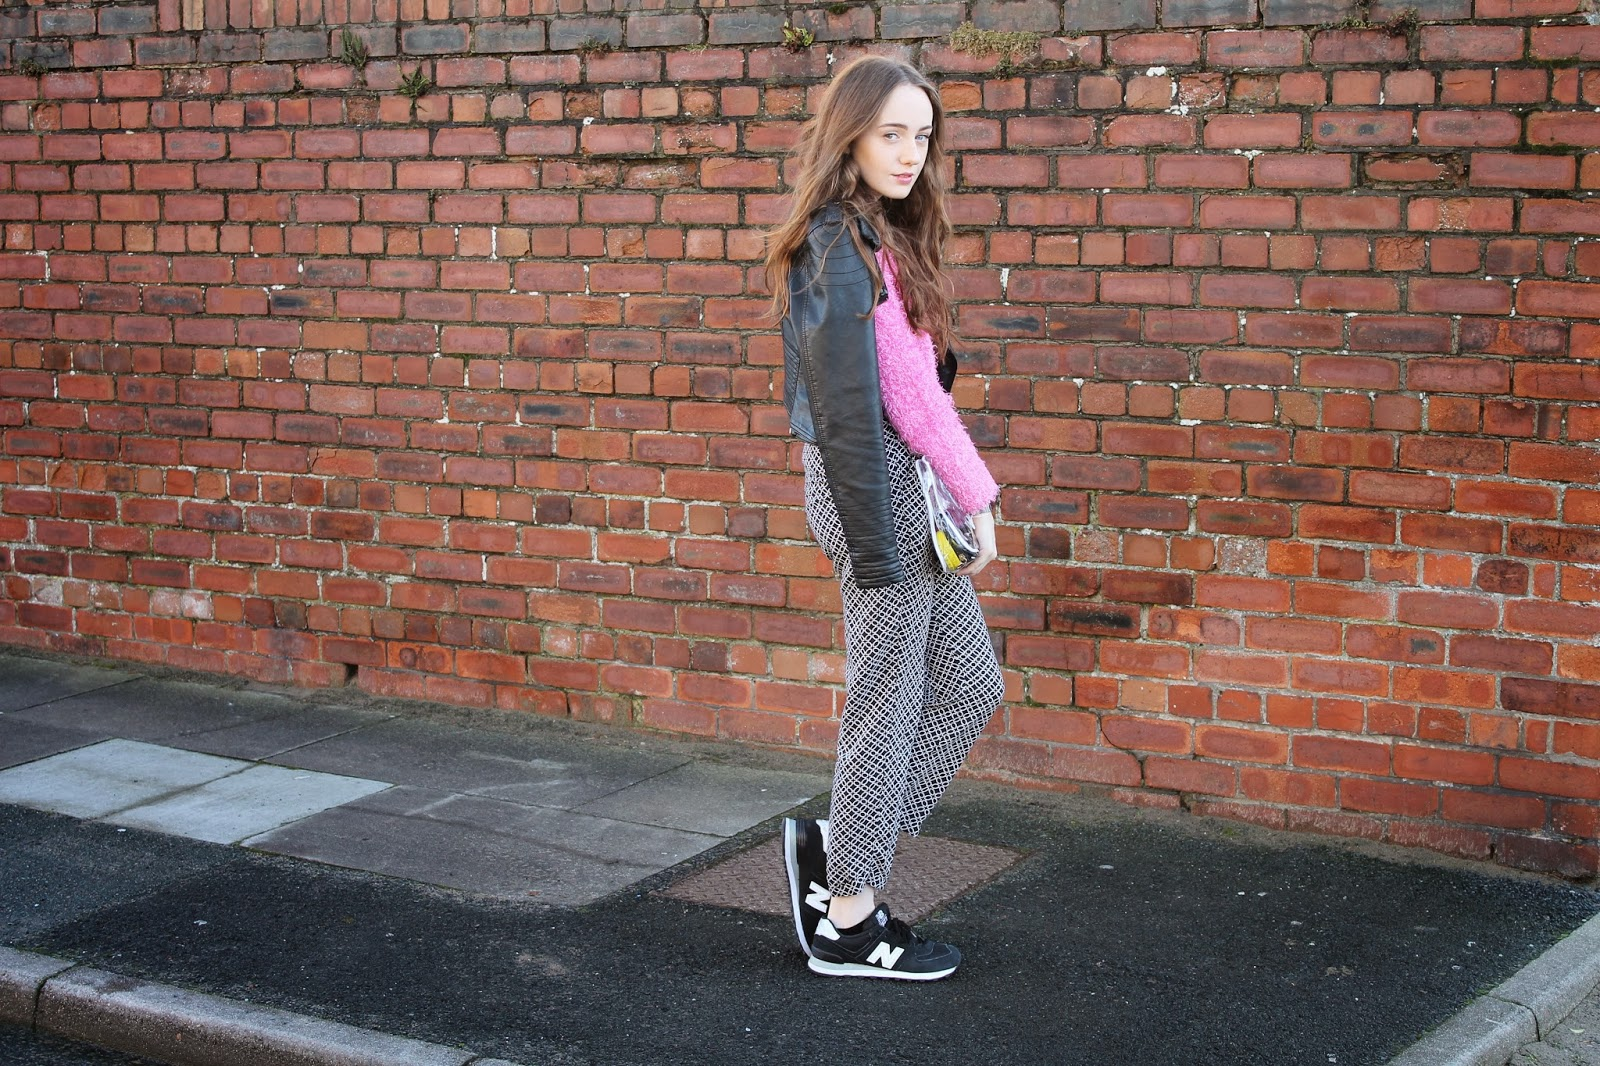 blogger wearing new balances trainers, black and white new balance 540s, leather jacket worn over shoulders, see-through bag, clear clutch, pink fluffy primark jumper, monochrome pants